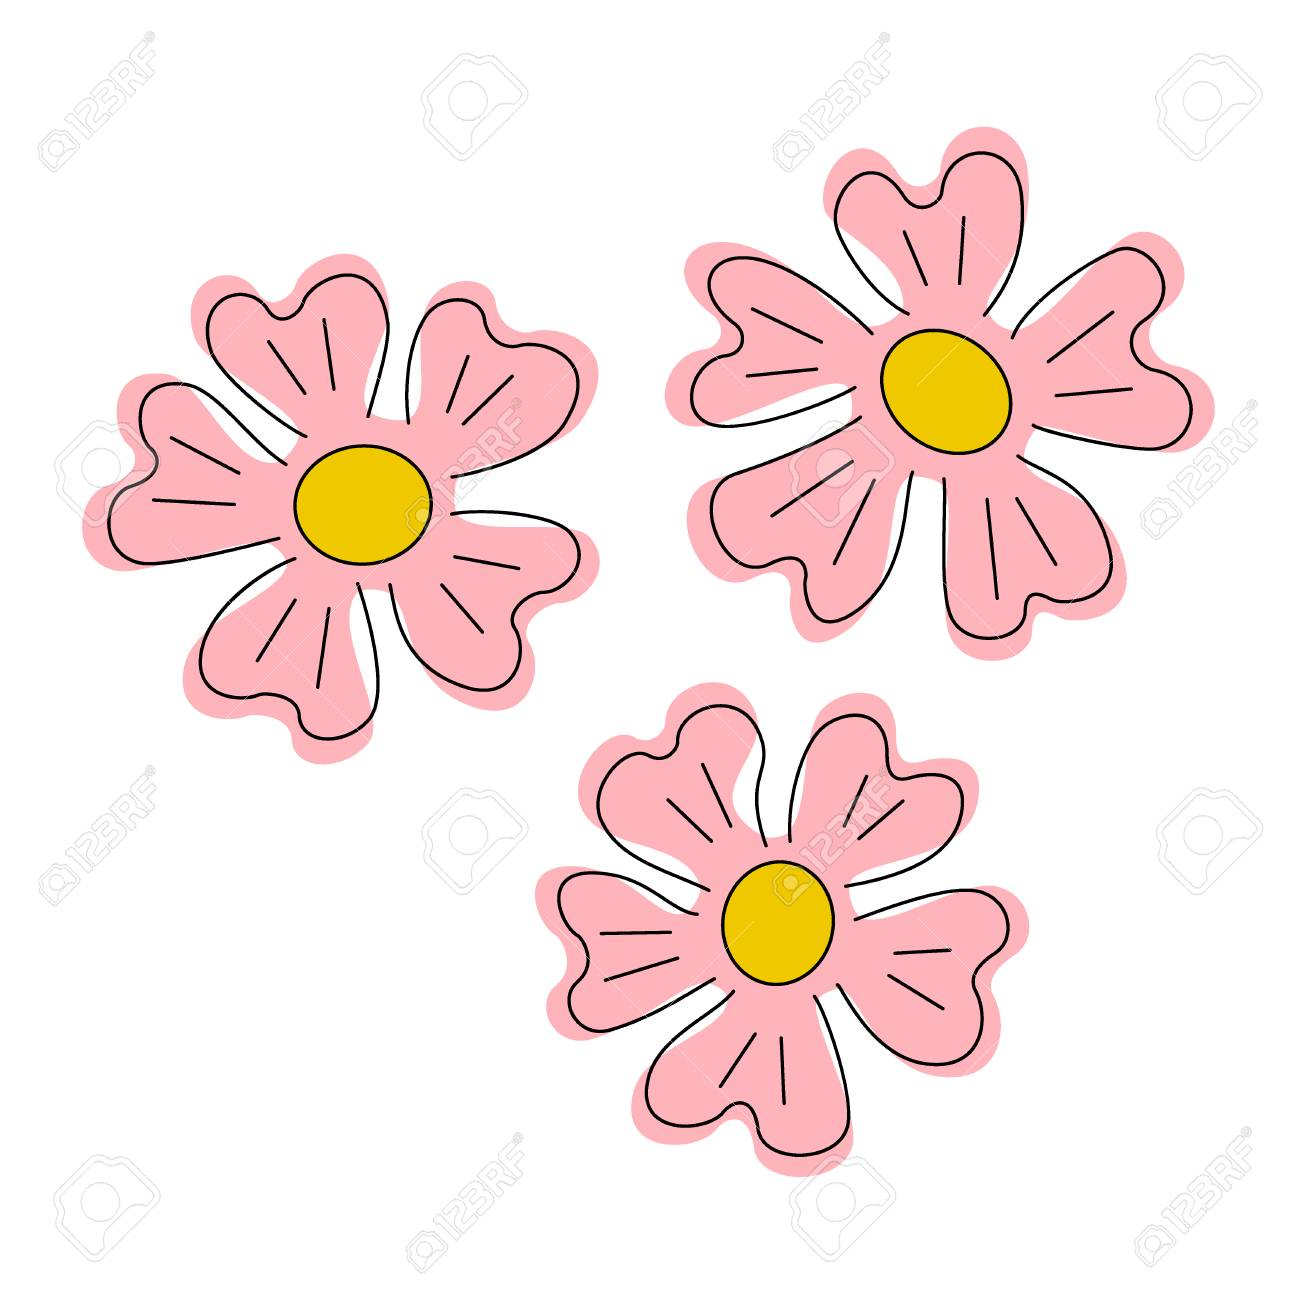 simple pink flowers rose and yellow little flower royalty free